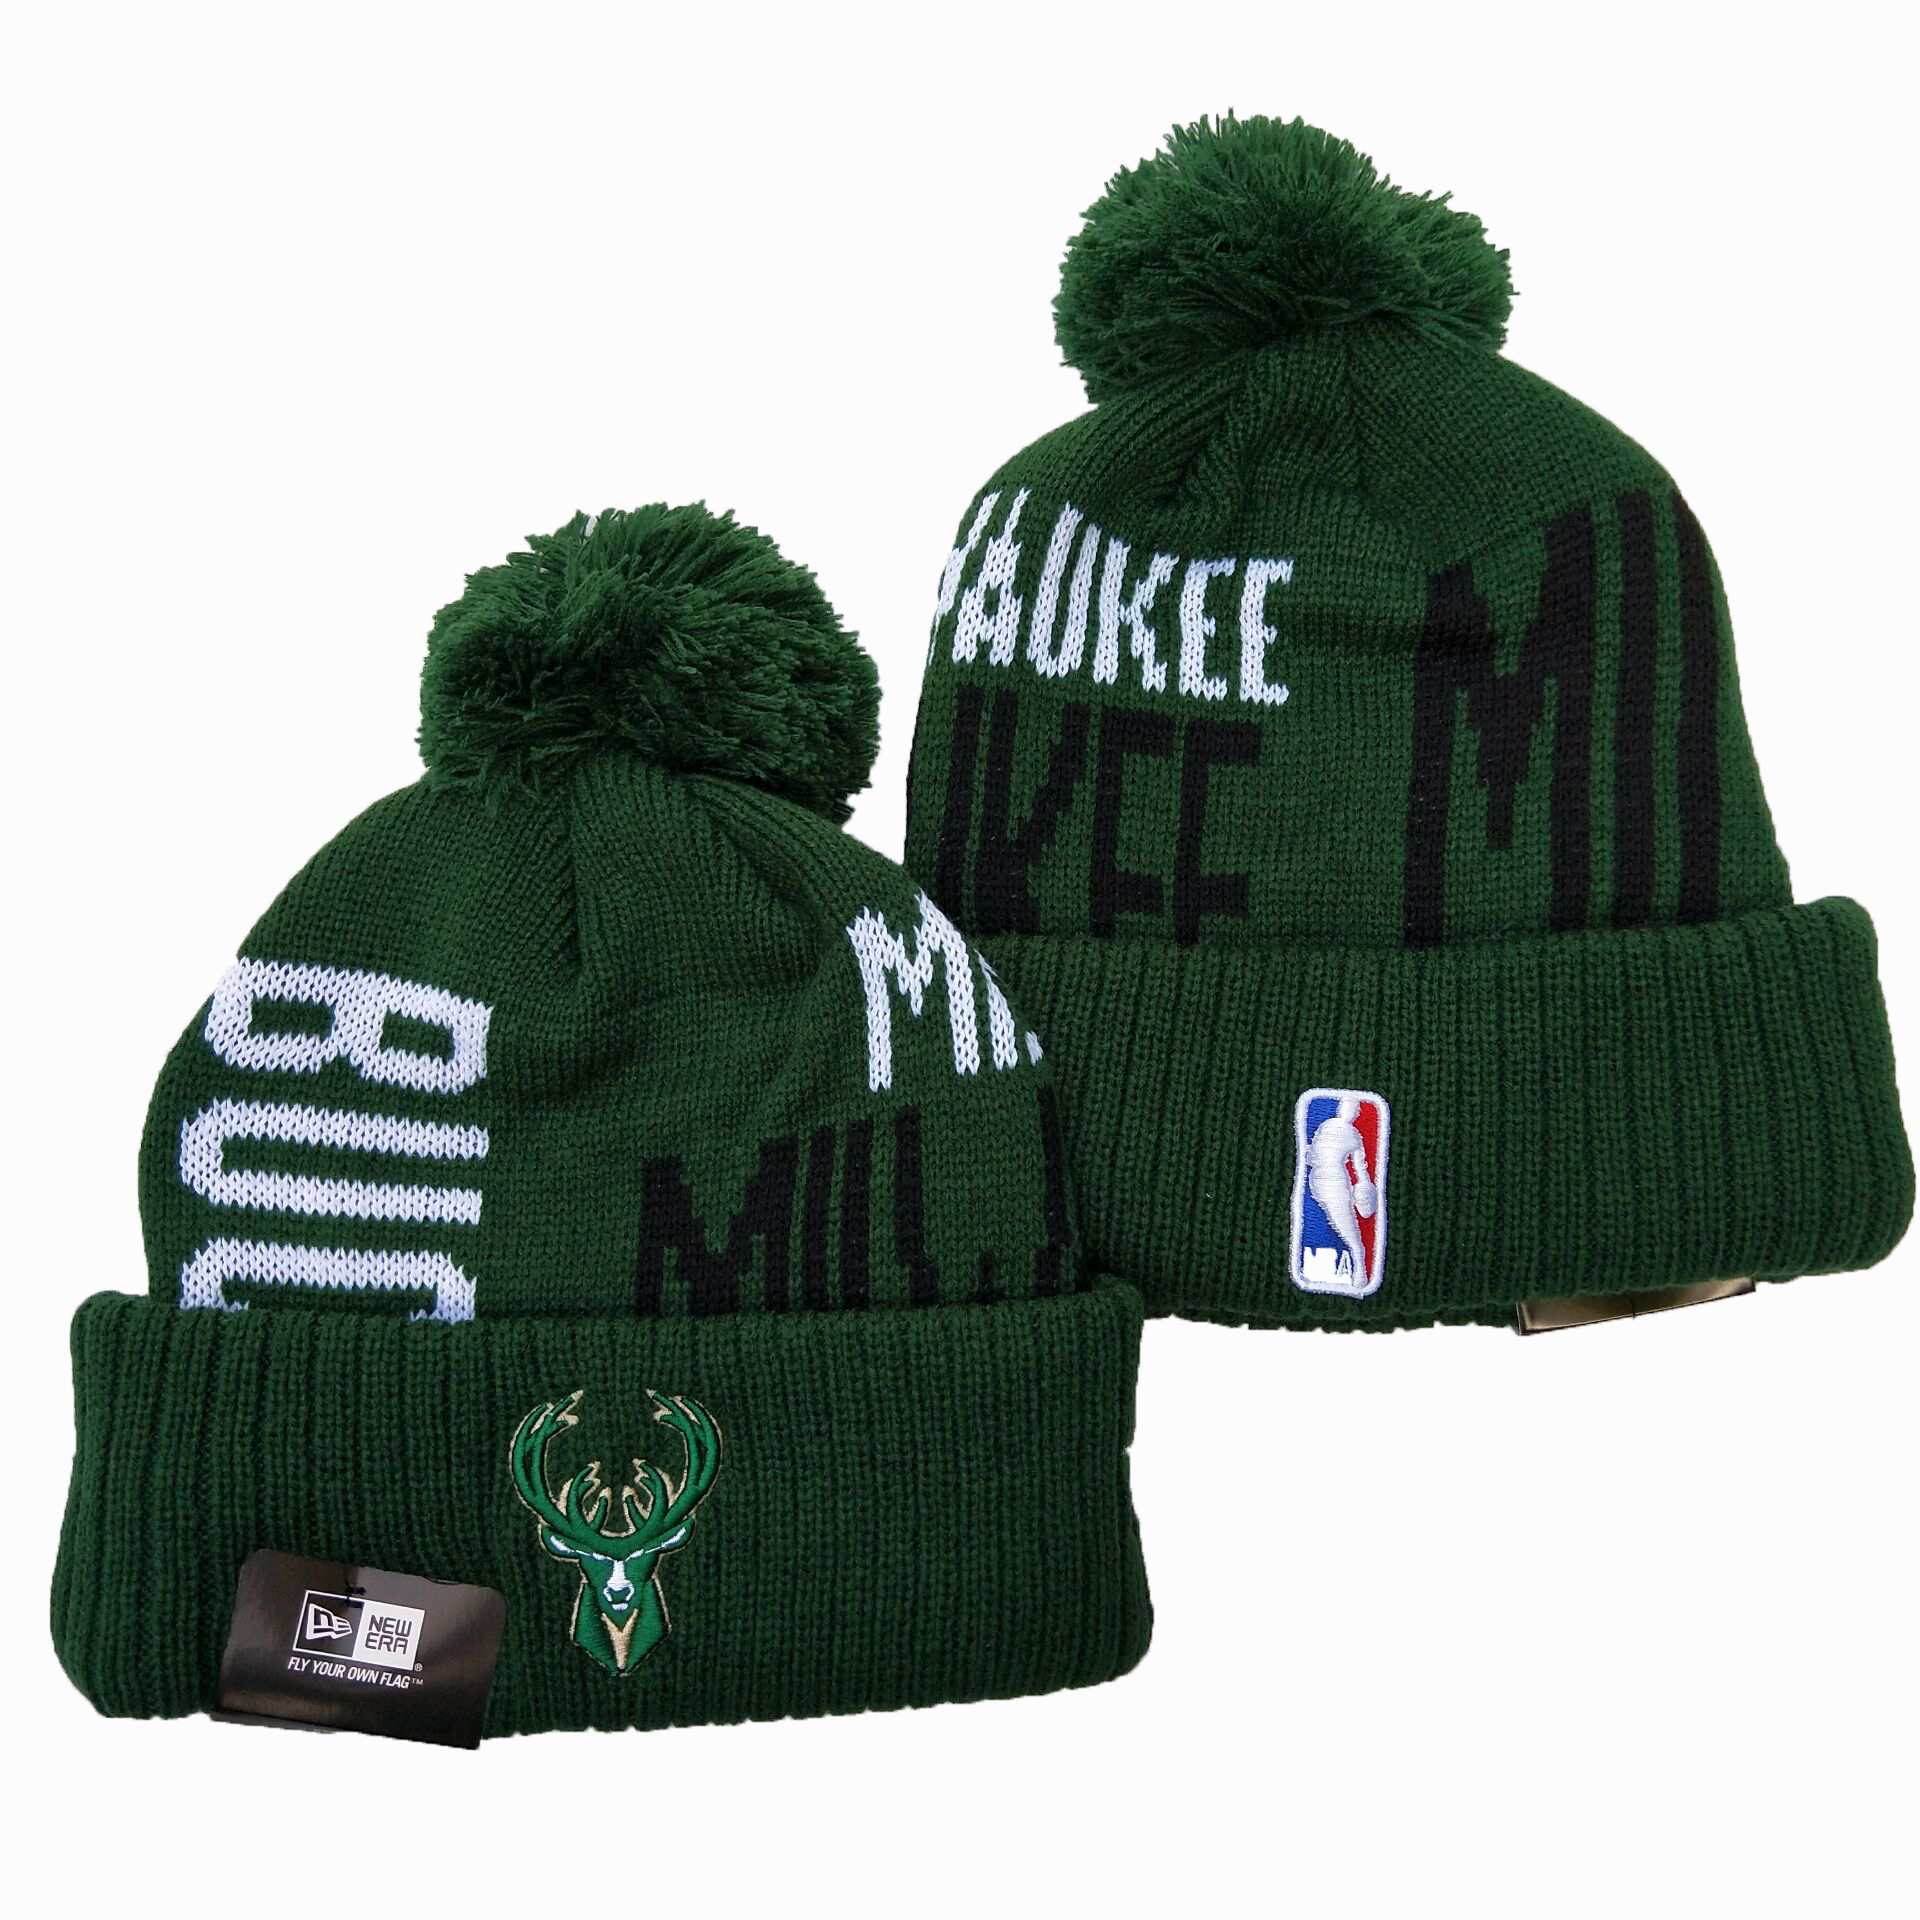 Bucks Team Logo Green Pom Knit Hat YD